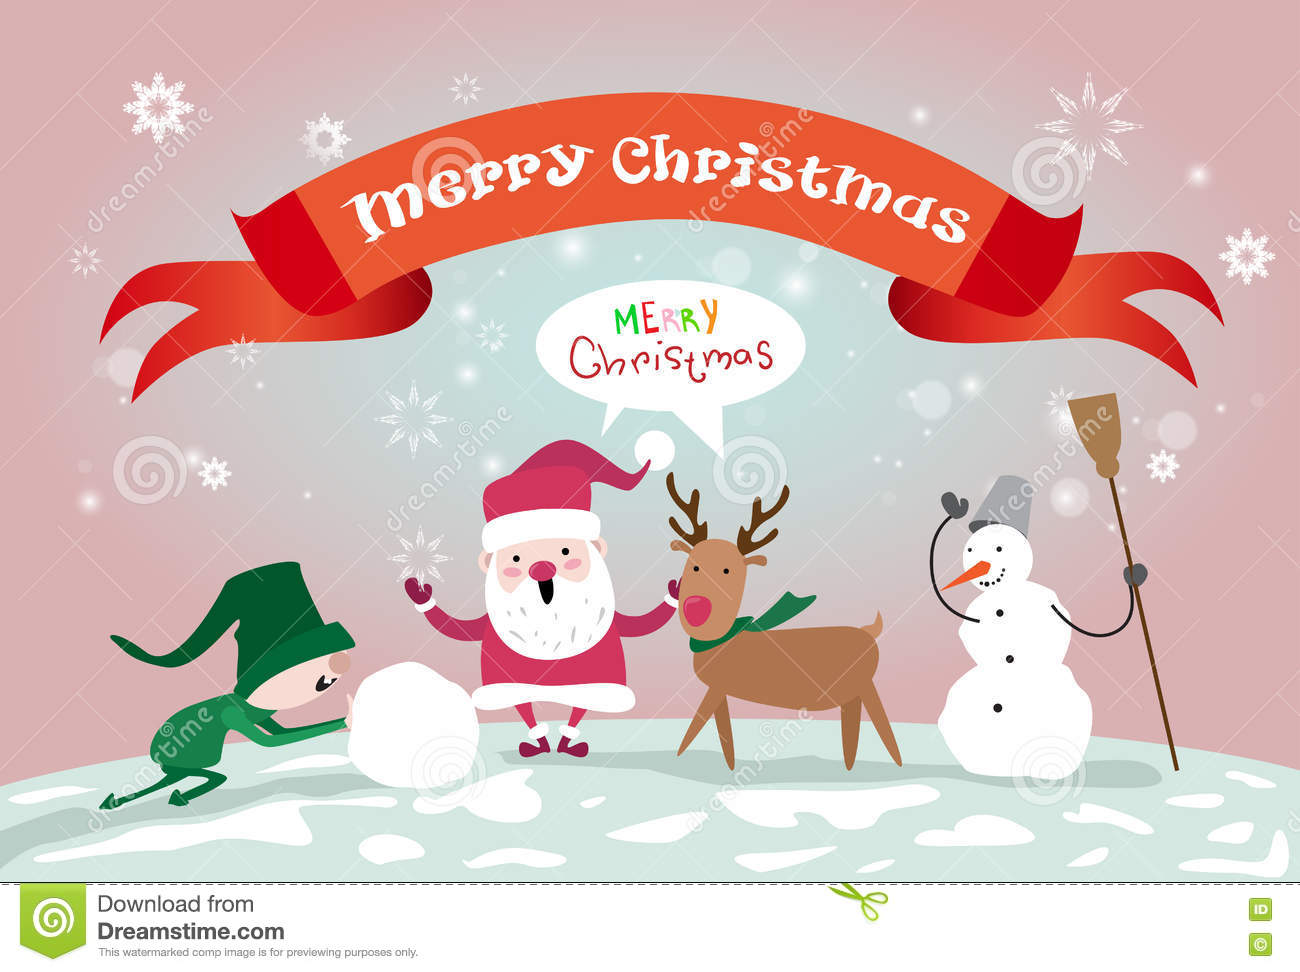 merry christmas santa clause reindeer elf making snowman happy new year greeting card